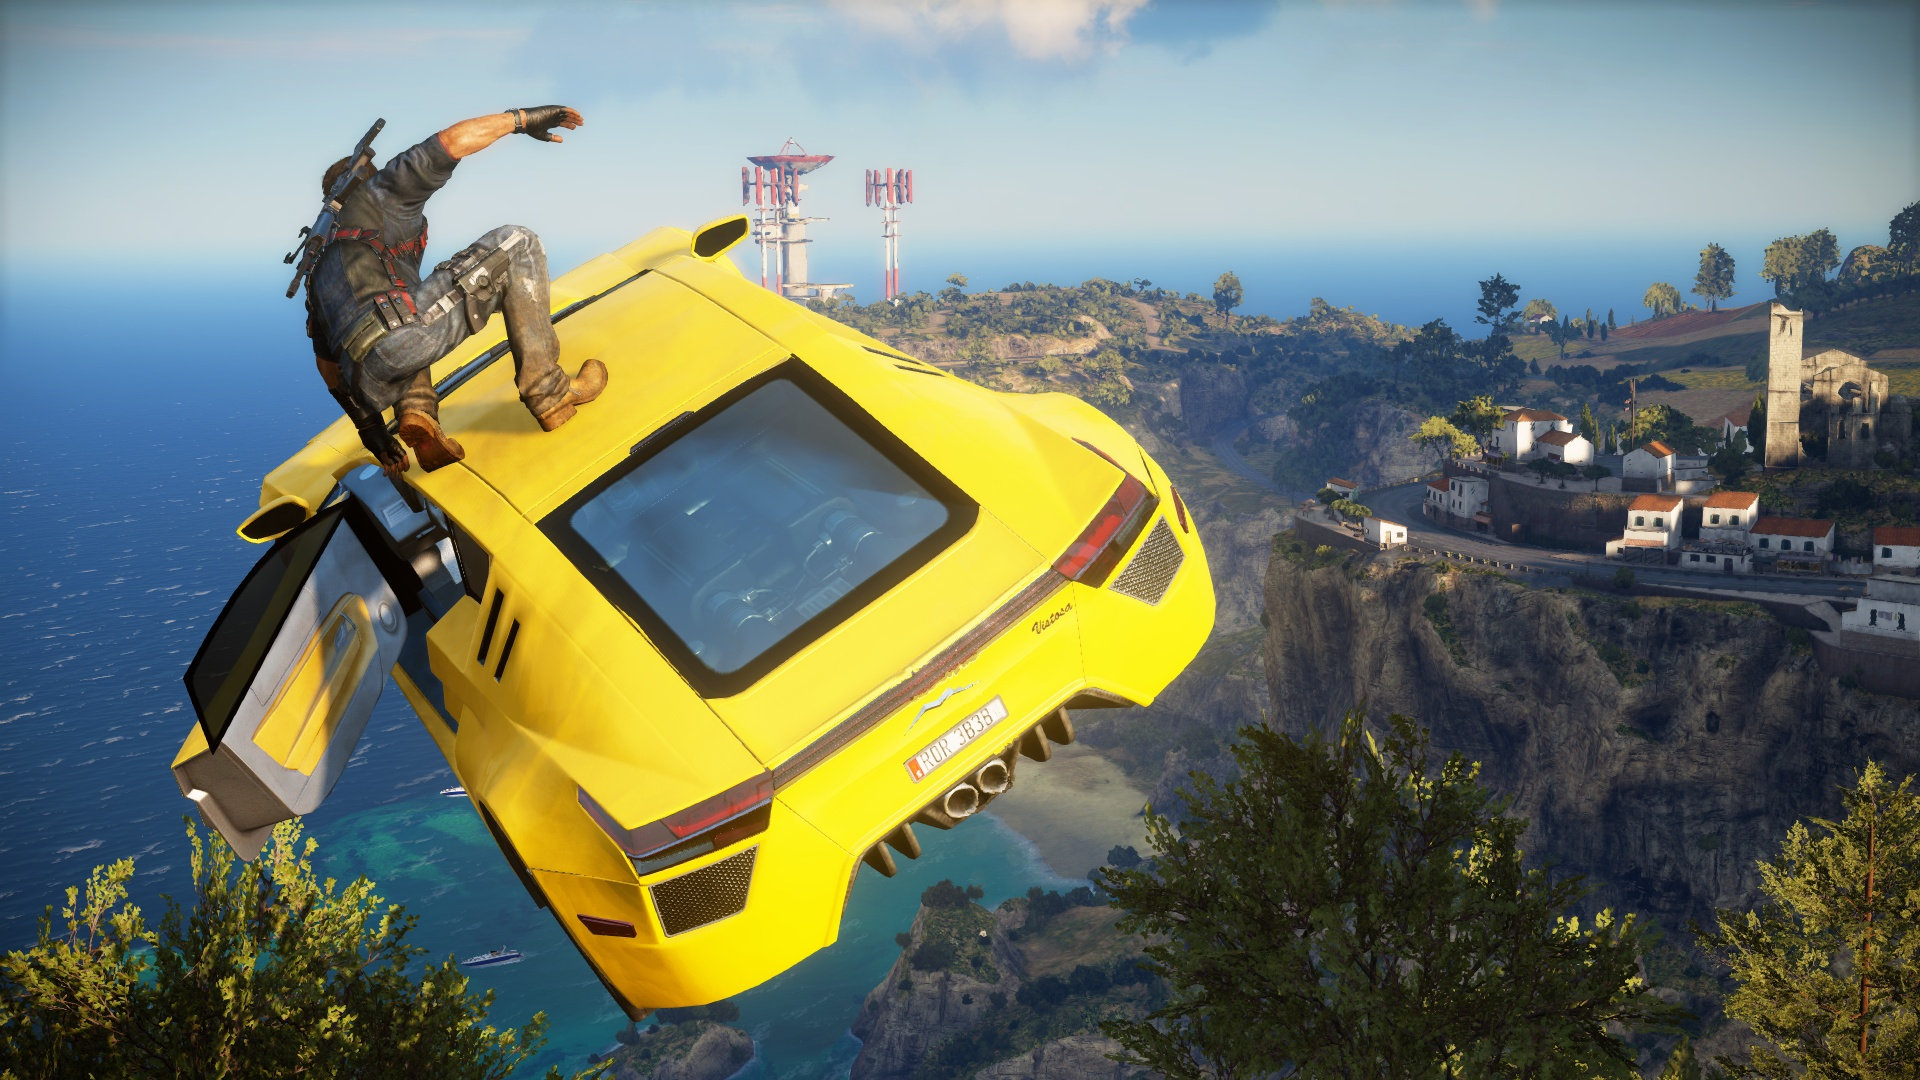 CPU Intensive Games Just cause 3